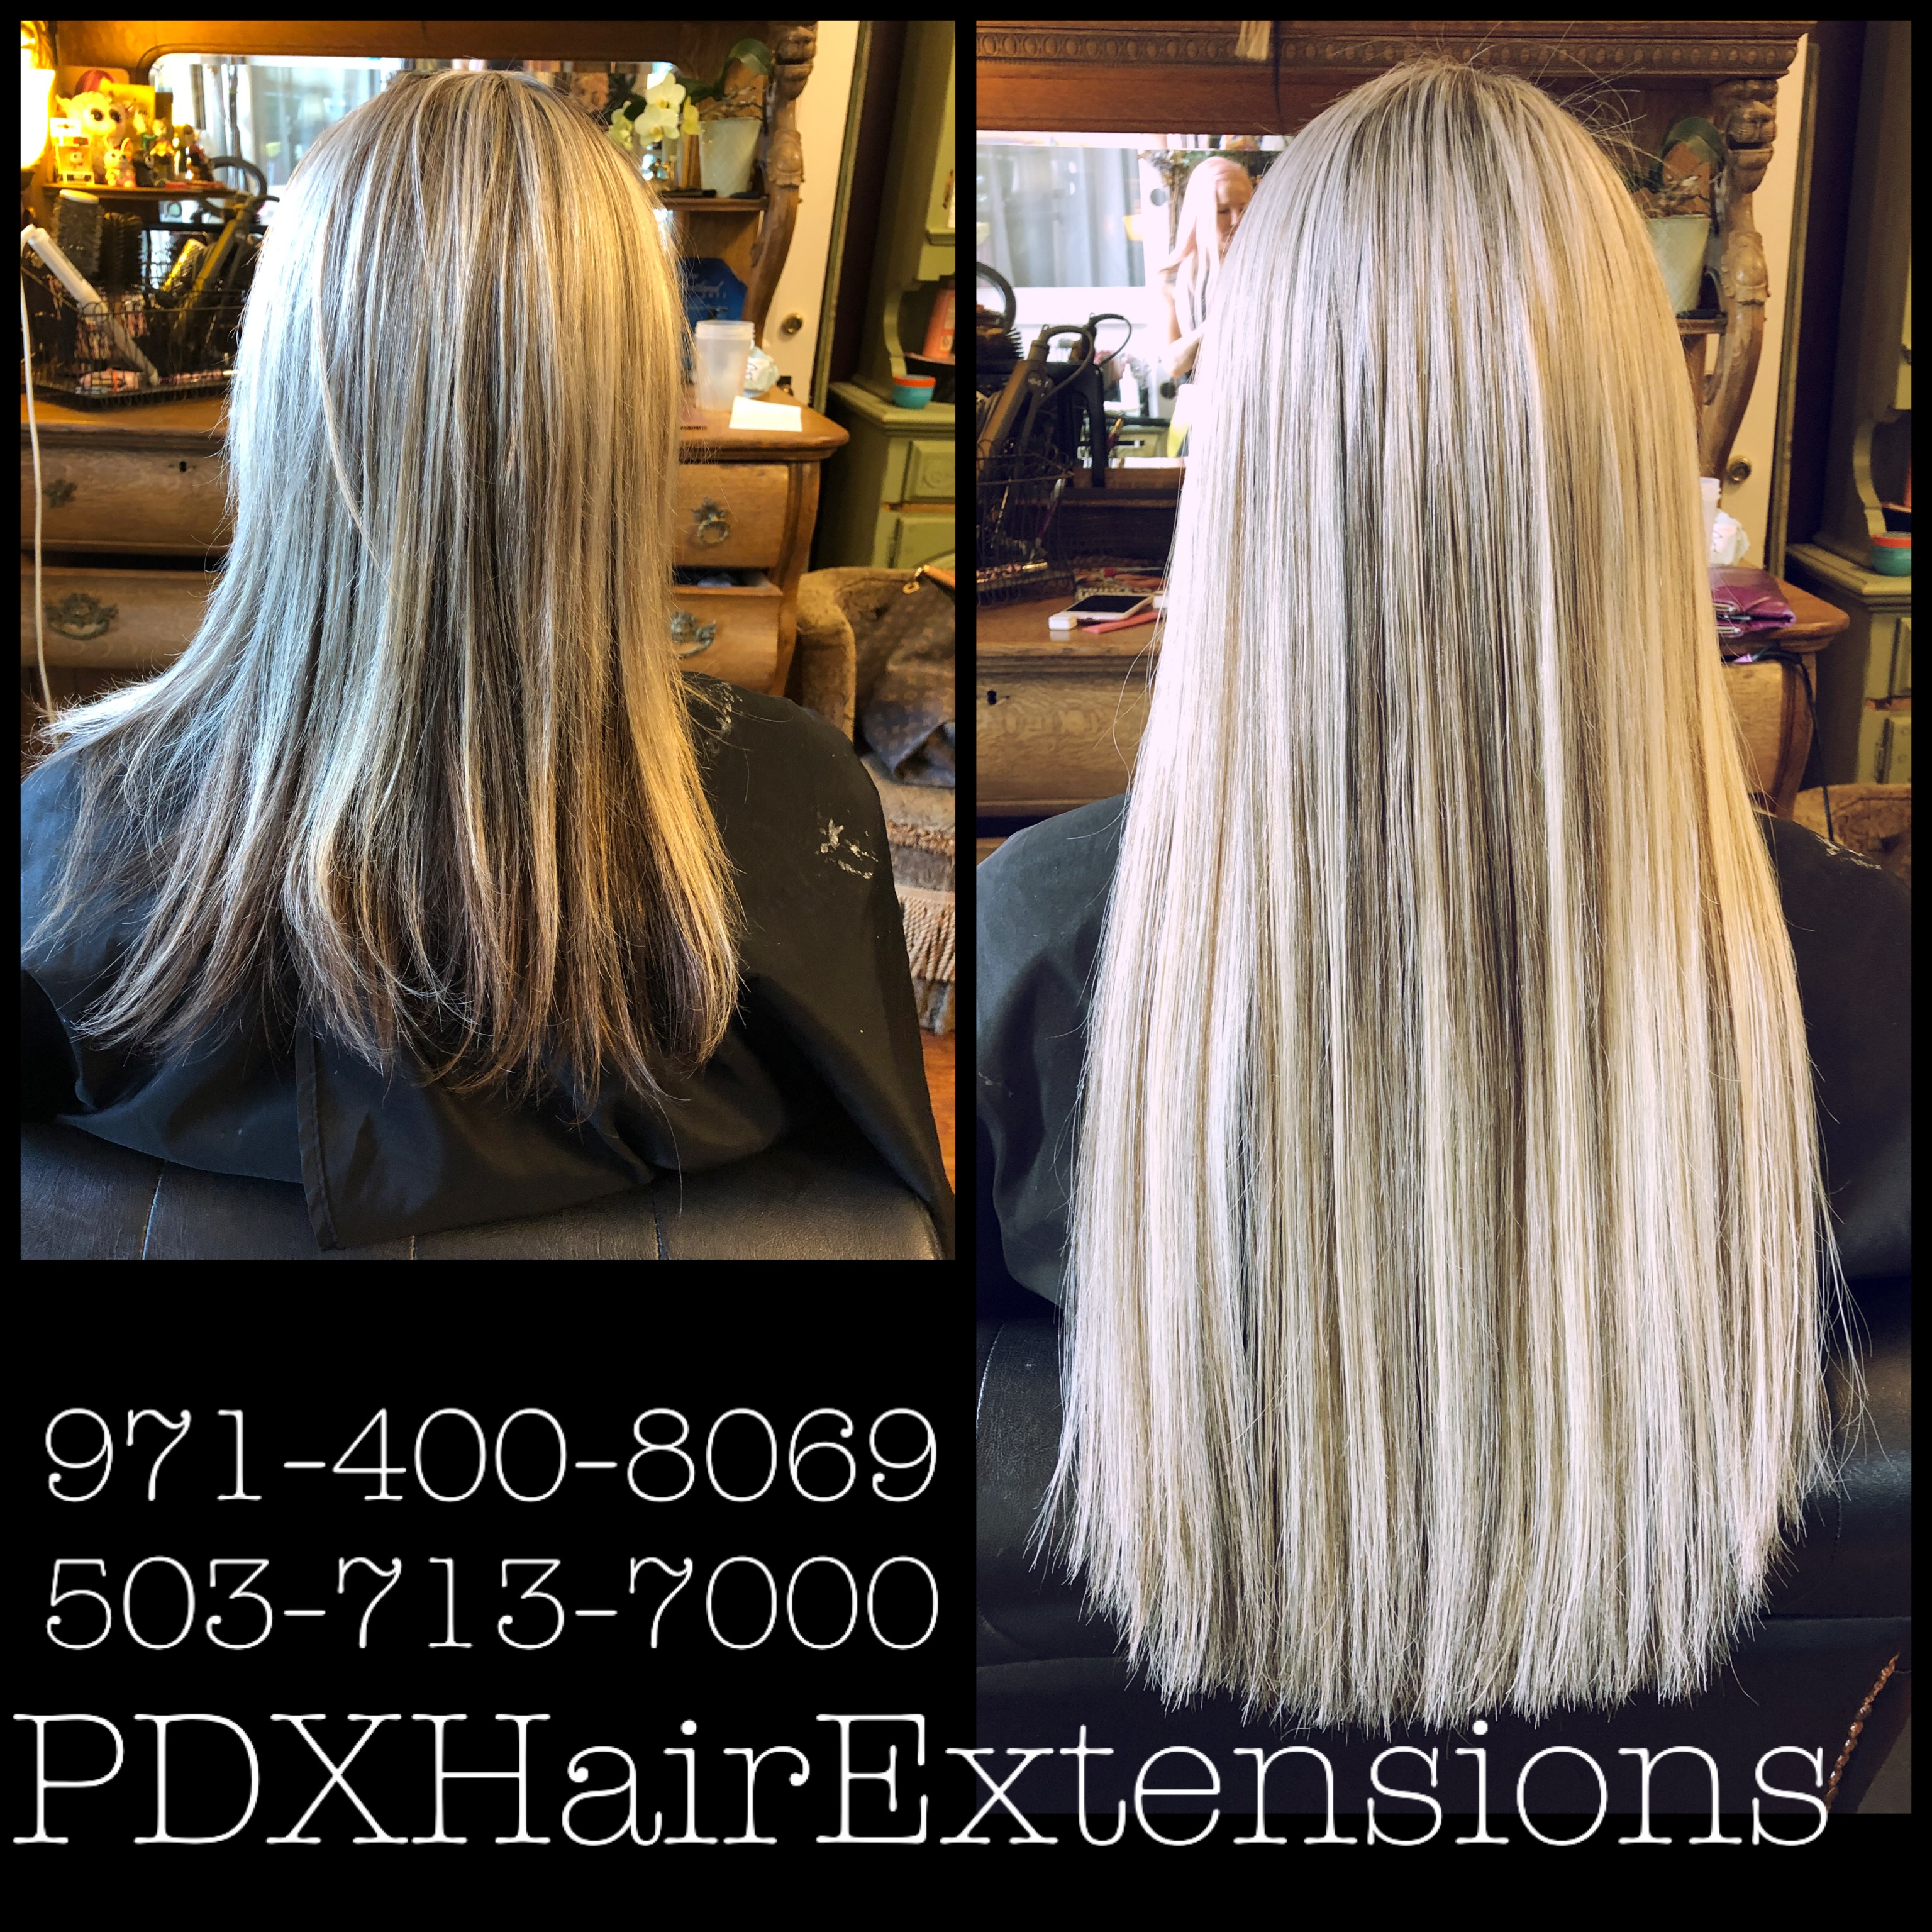 Before & After: Platinum Extensions